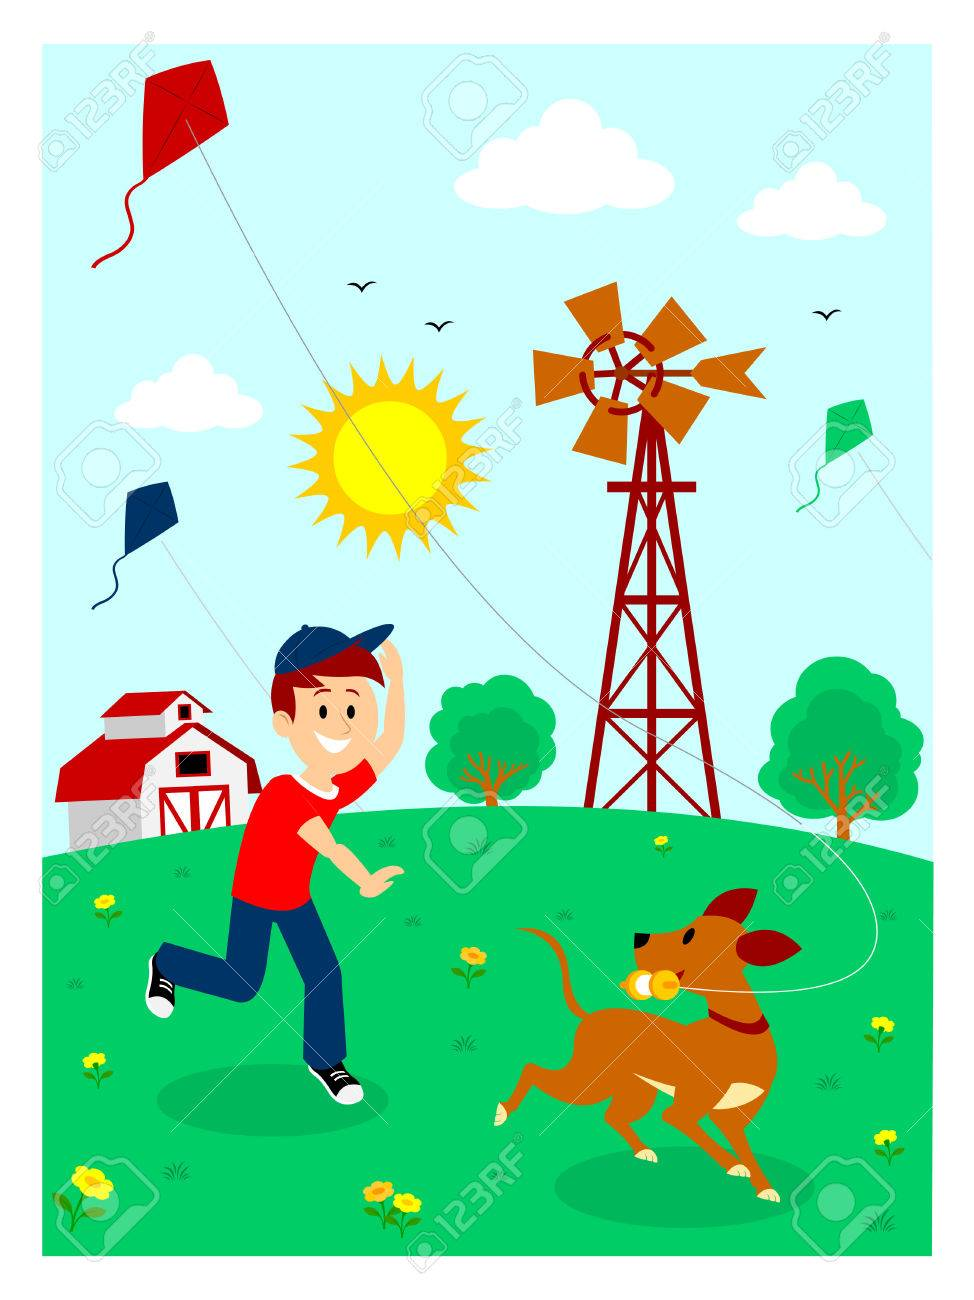 hight resolution of boy playing kite with his dog clipart stock vector 57577100